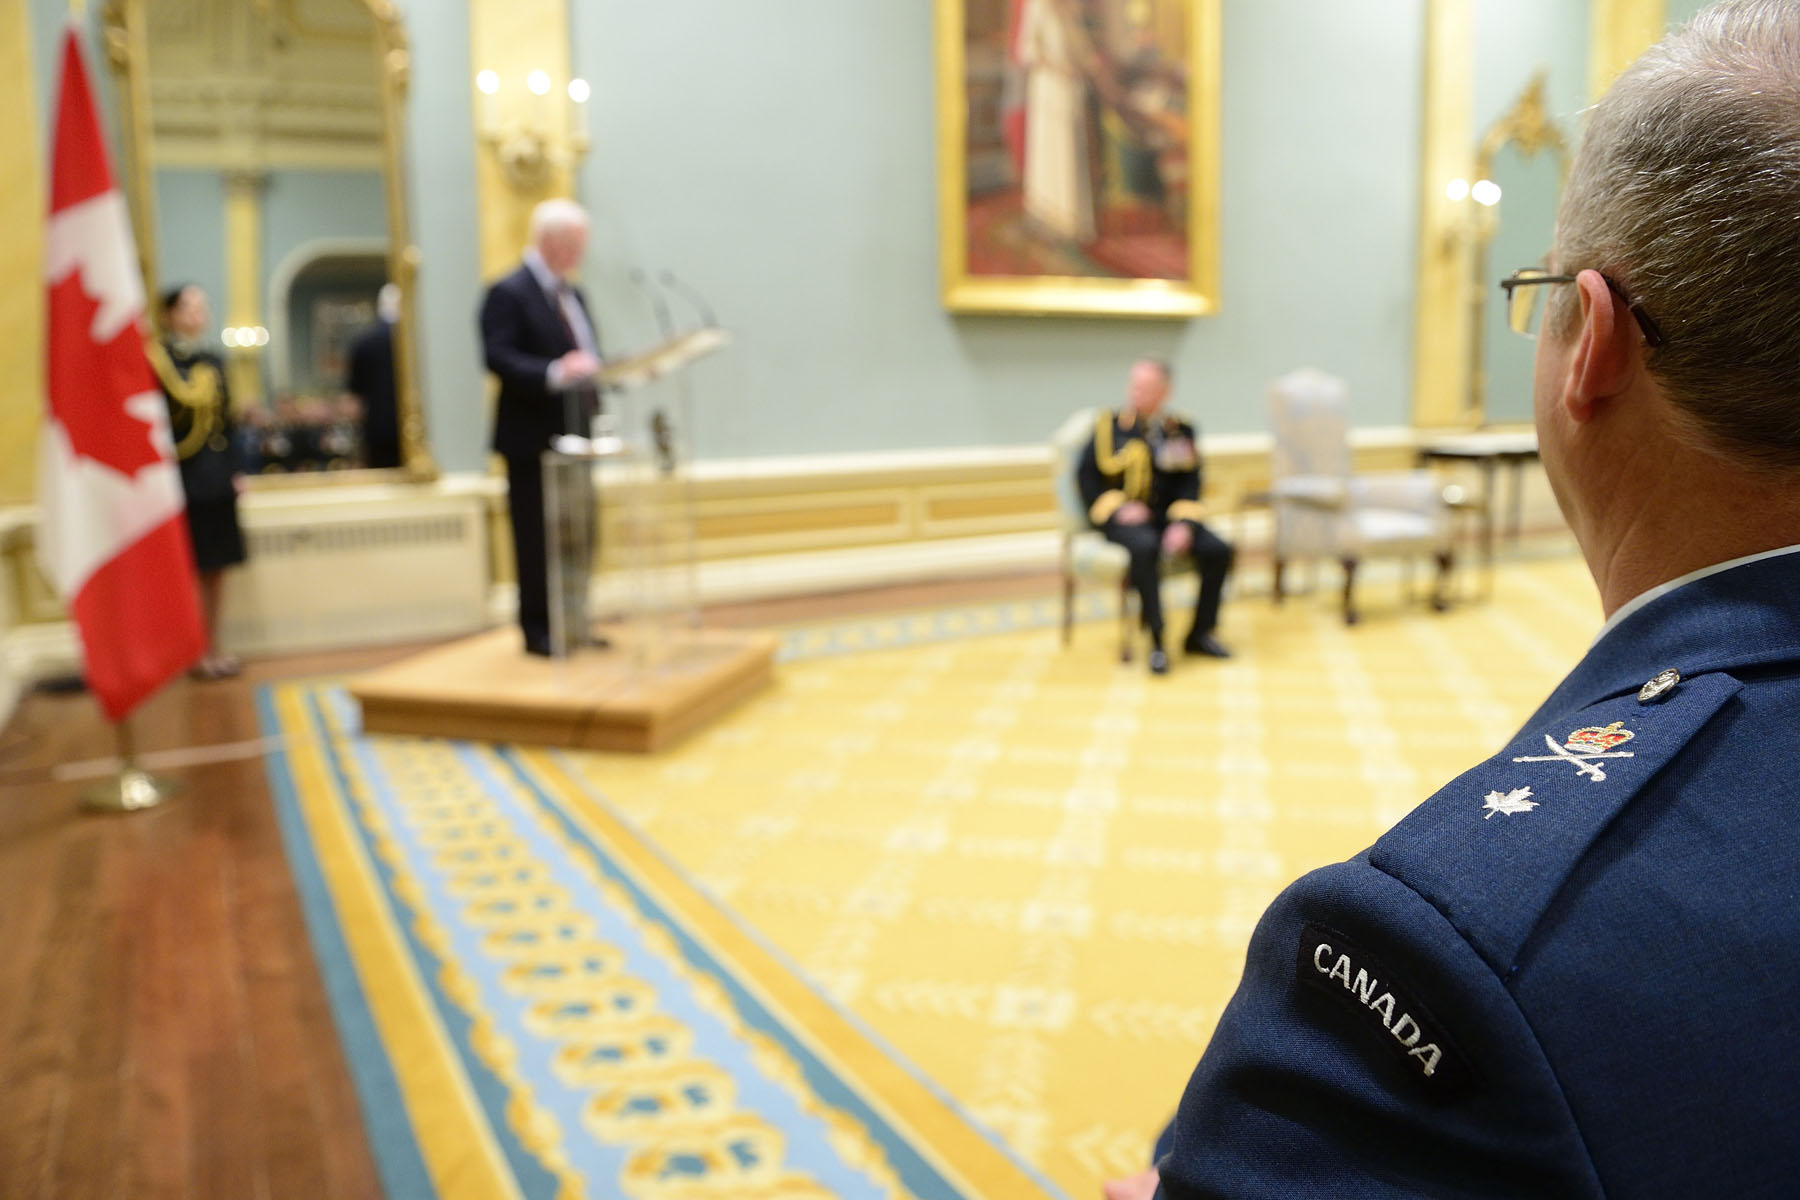 The Governor General and Commander-in-Chief of Canada recognized the promotion of Canadian Armed Forces members during a presentation of scrolls held at Rideau Hall.